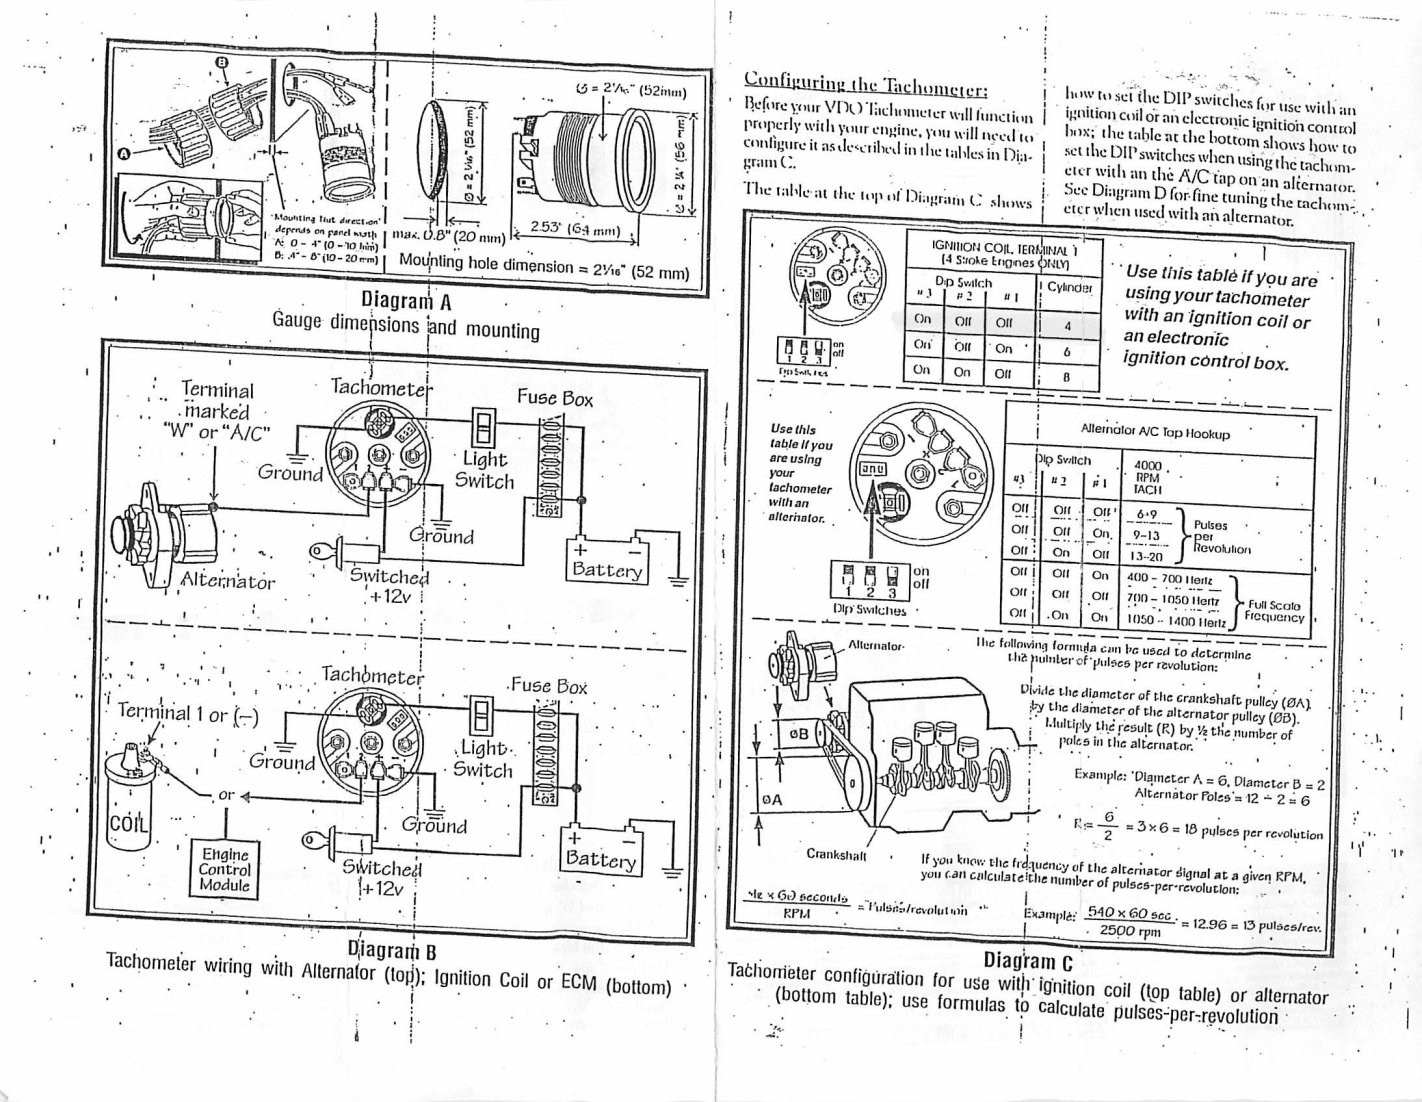 hc_4108] vdo wiring instructions including vdo tachometer dip switch  settings schematic wiring  gue45 umng mohammedshrine librar wiring 101